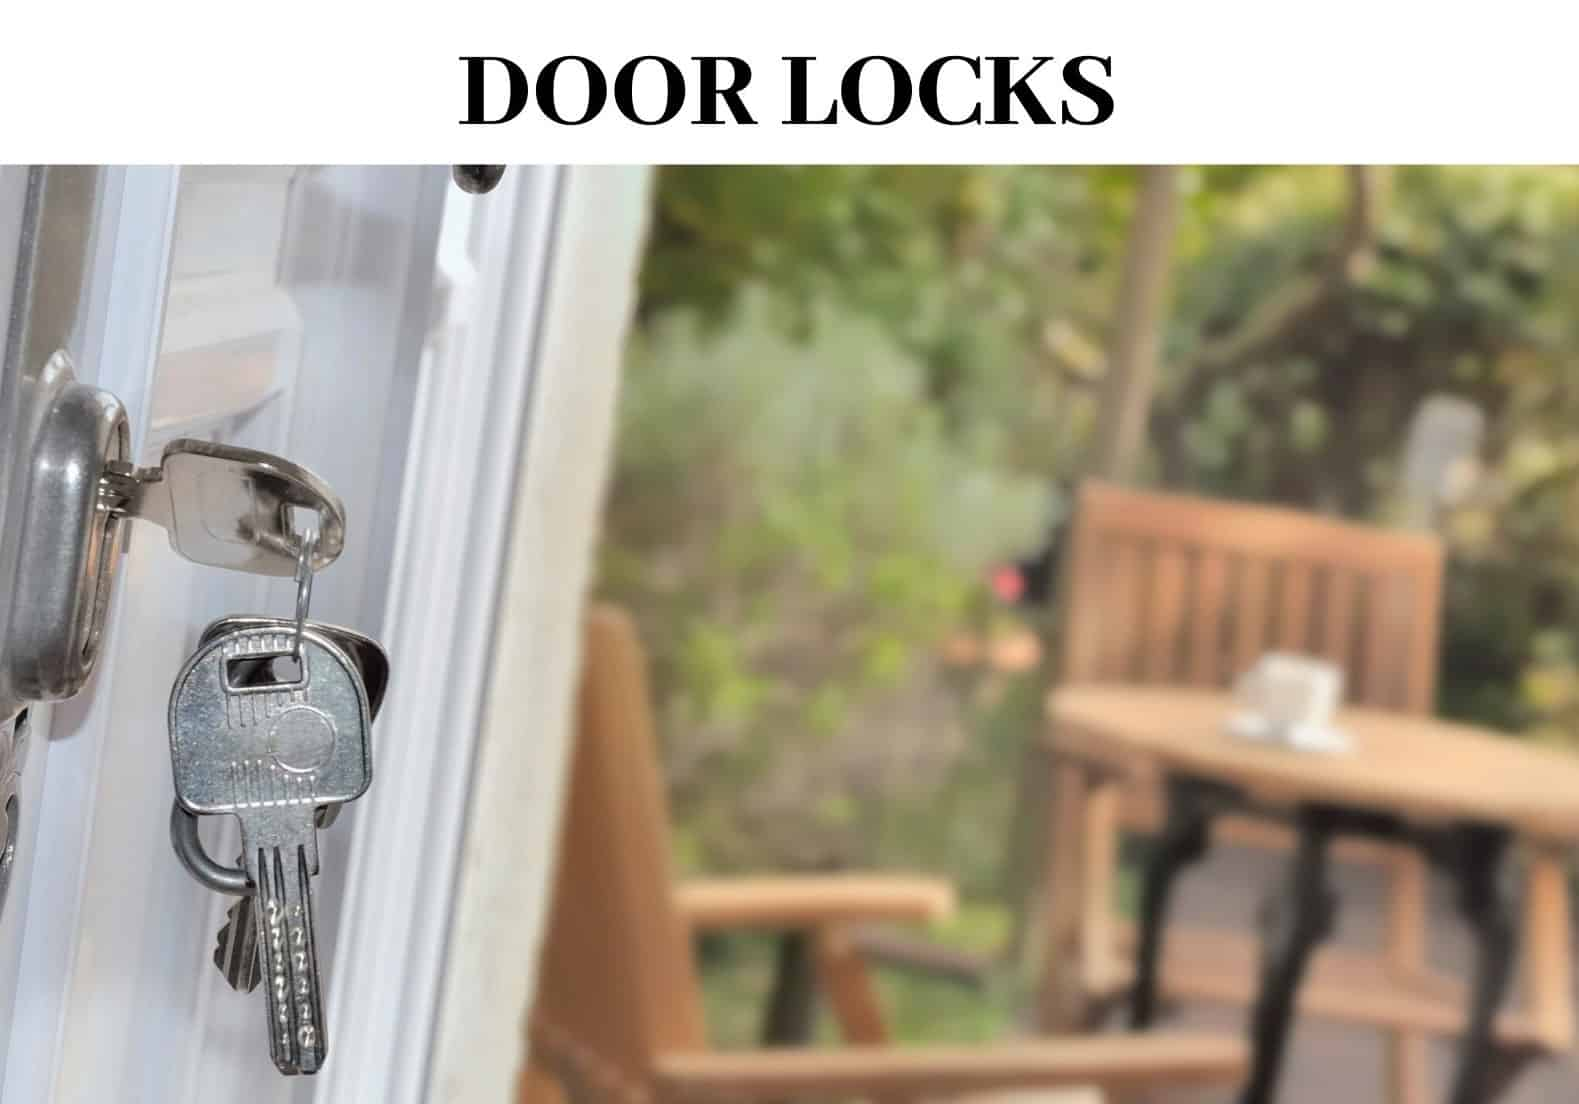 Install new lock with Finnegan Edison Locksmith